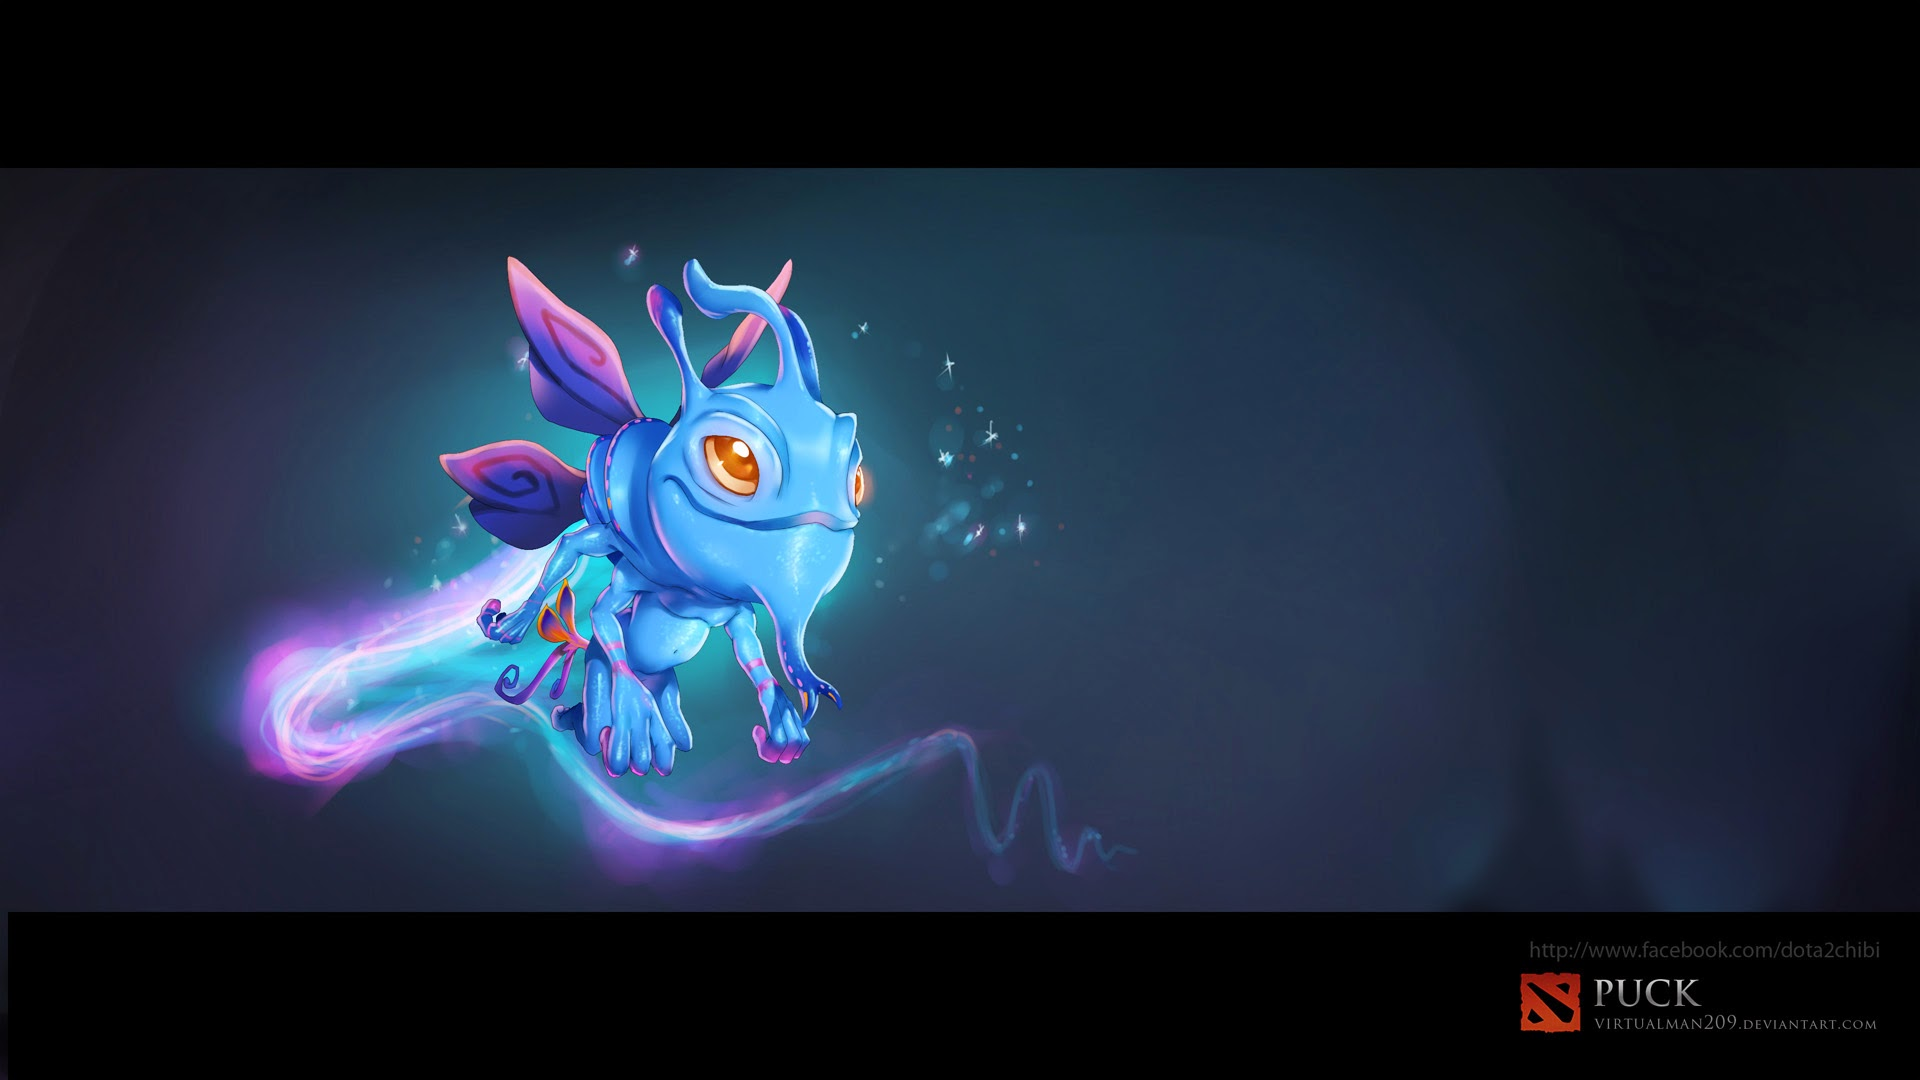 Puck Dota 2 h5 Wallpaper HD